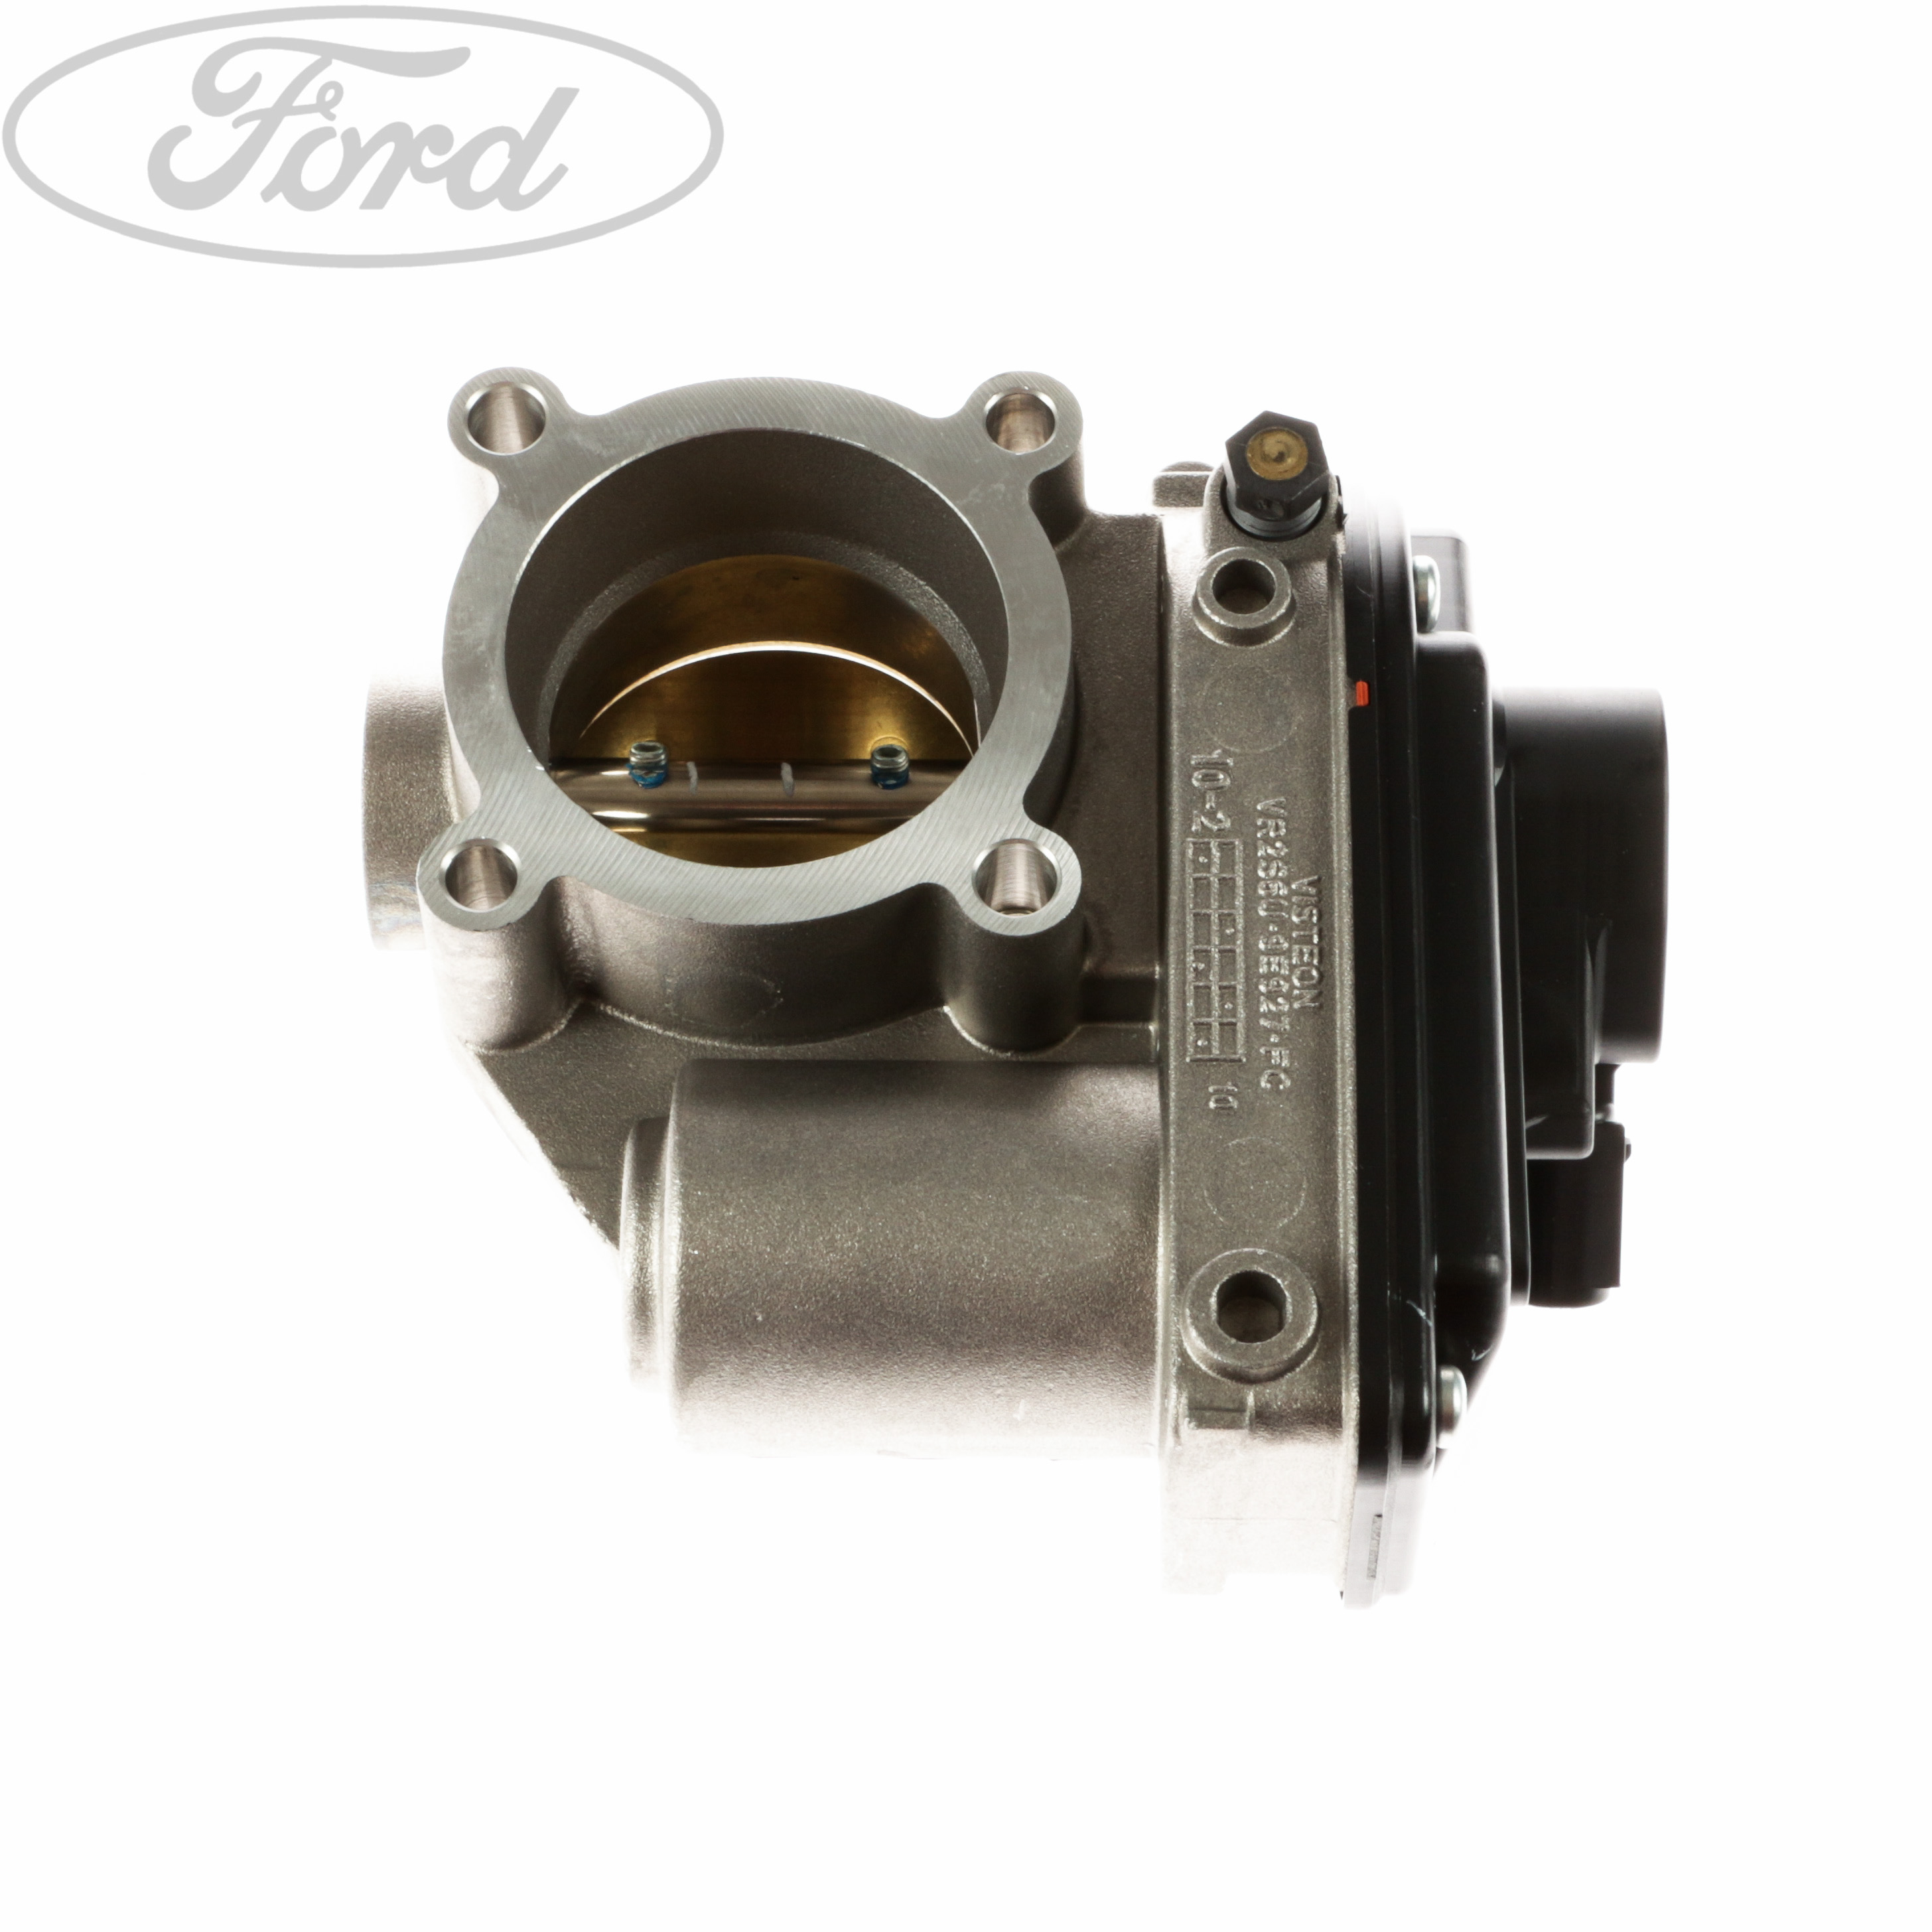 Genuine ford fiesta fusion 1 4 1 6 throttle body for Ford motor company auto parts